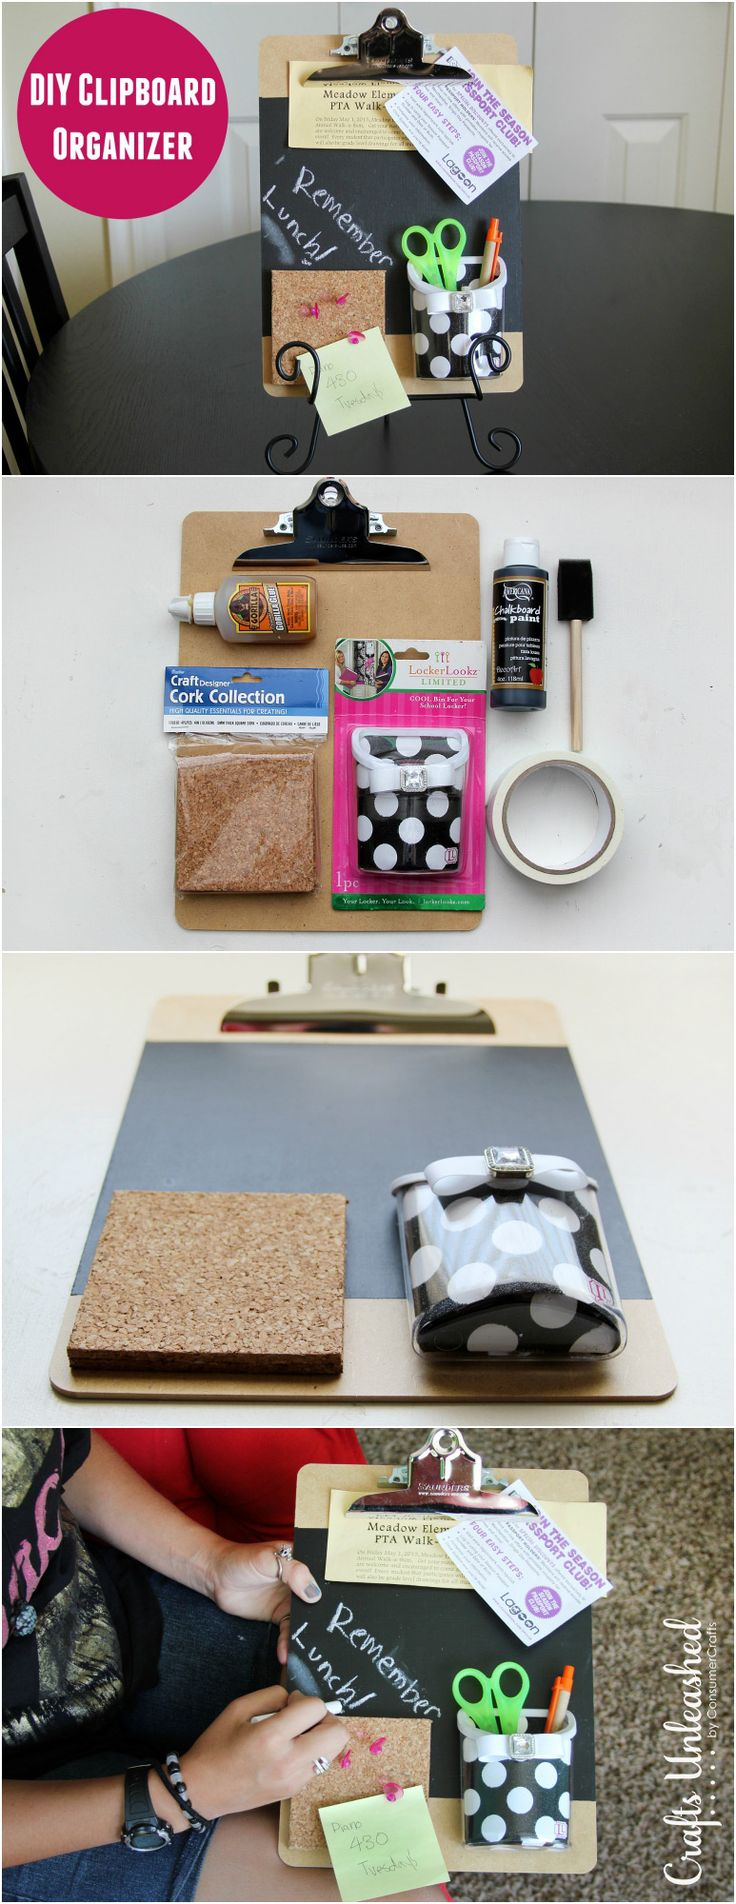 Help keep the kids or yourself on task with this fun & useful DIY clipboard organizer. It's simple to put together & is great for homework or the office!